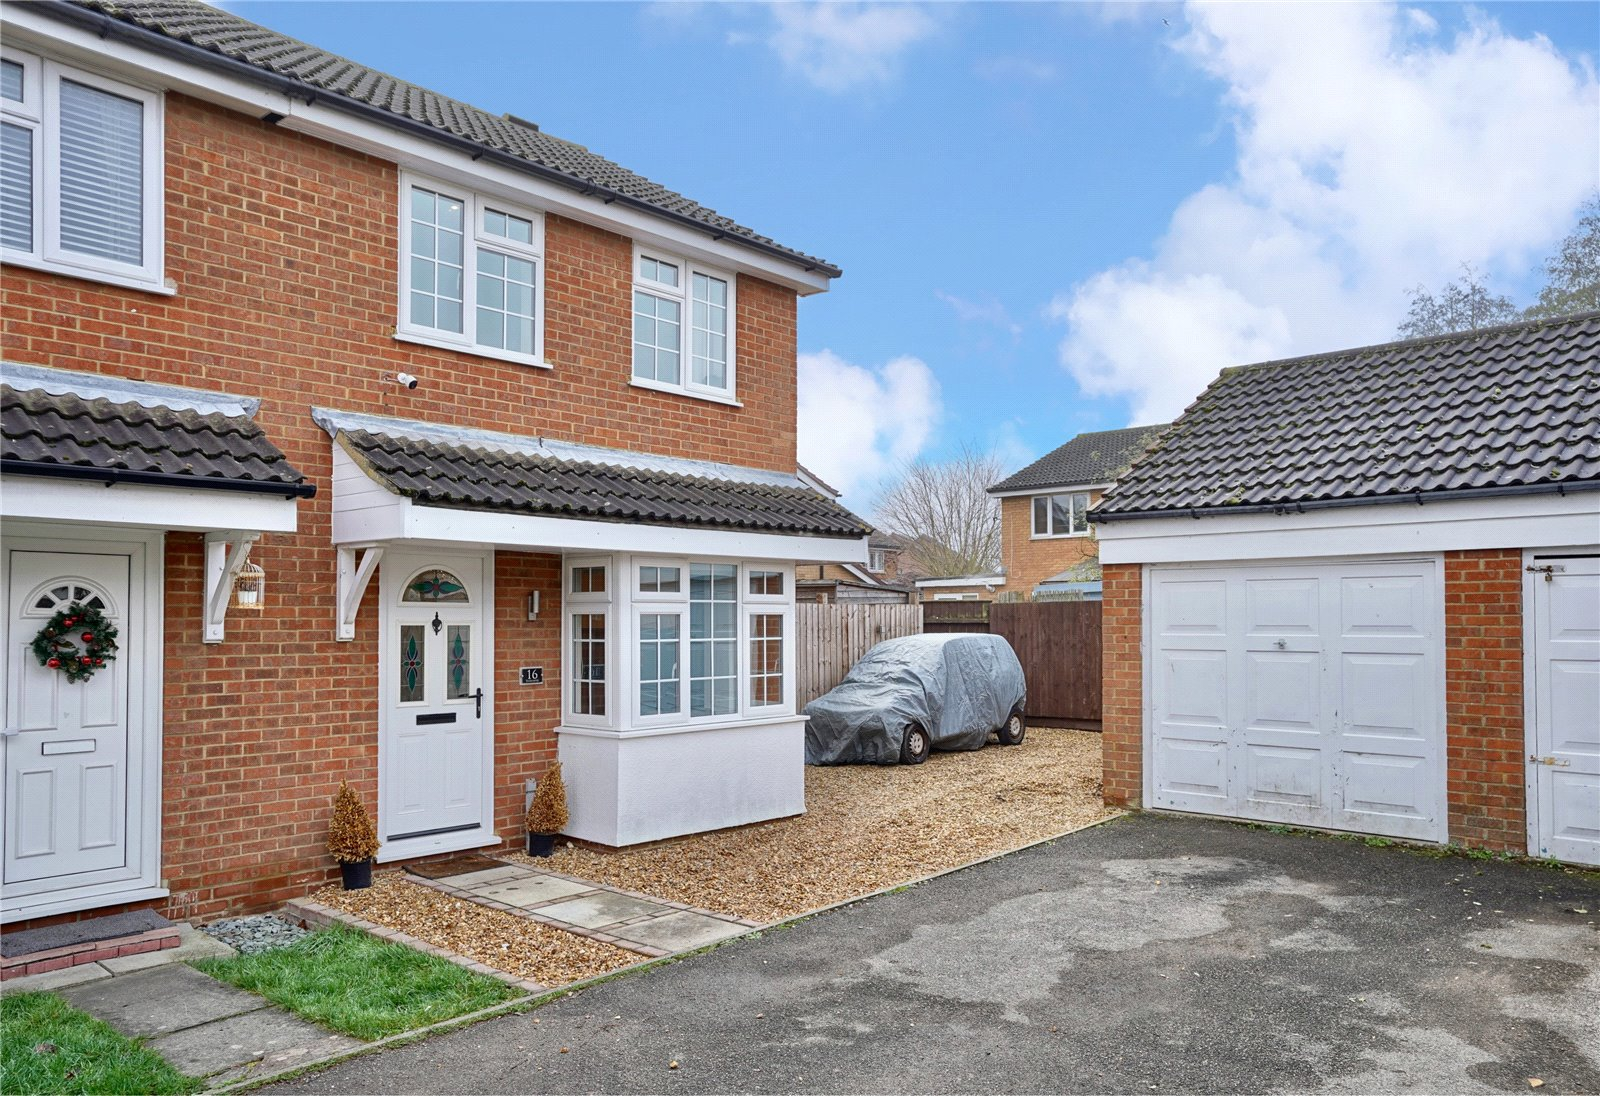 3 bed house for sale in Huntingdon, PE29 6UJ - Property Image 1